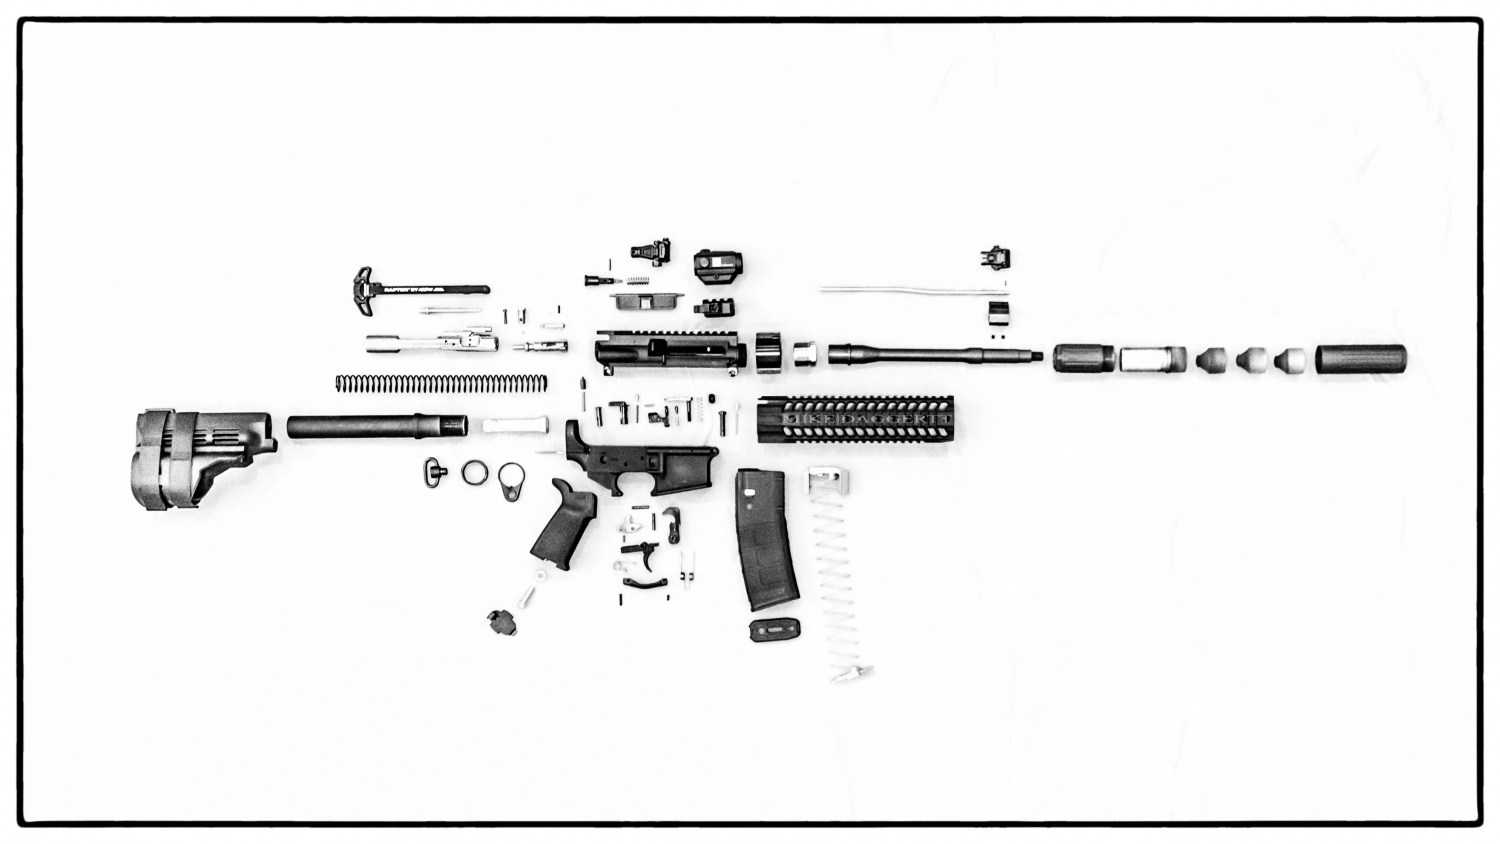 Ar 15 Parts List Spreadsheet With Regard To Ar15 Parts Weights Database The Firearm Blog Ar 15 Parts List Spreadsheet Printable Spreadshee Printable Spreadshee ar 15 parts list spreadsheet